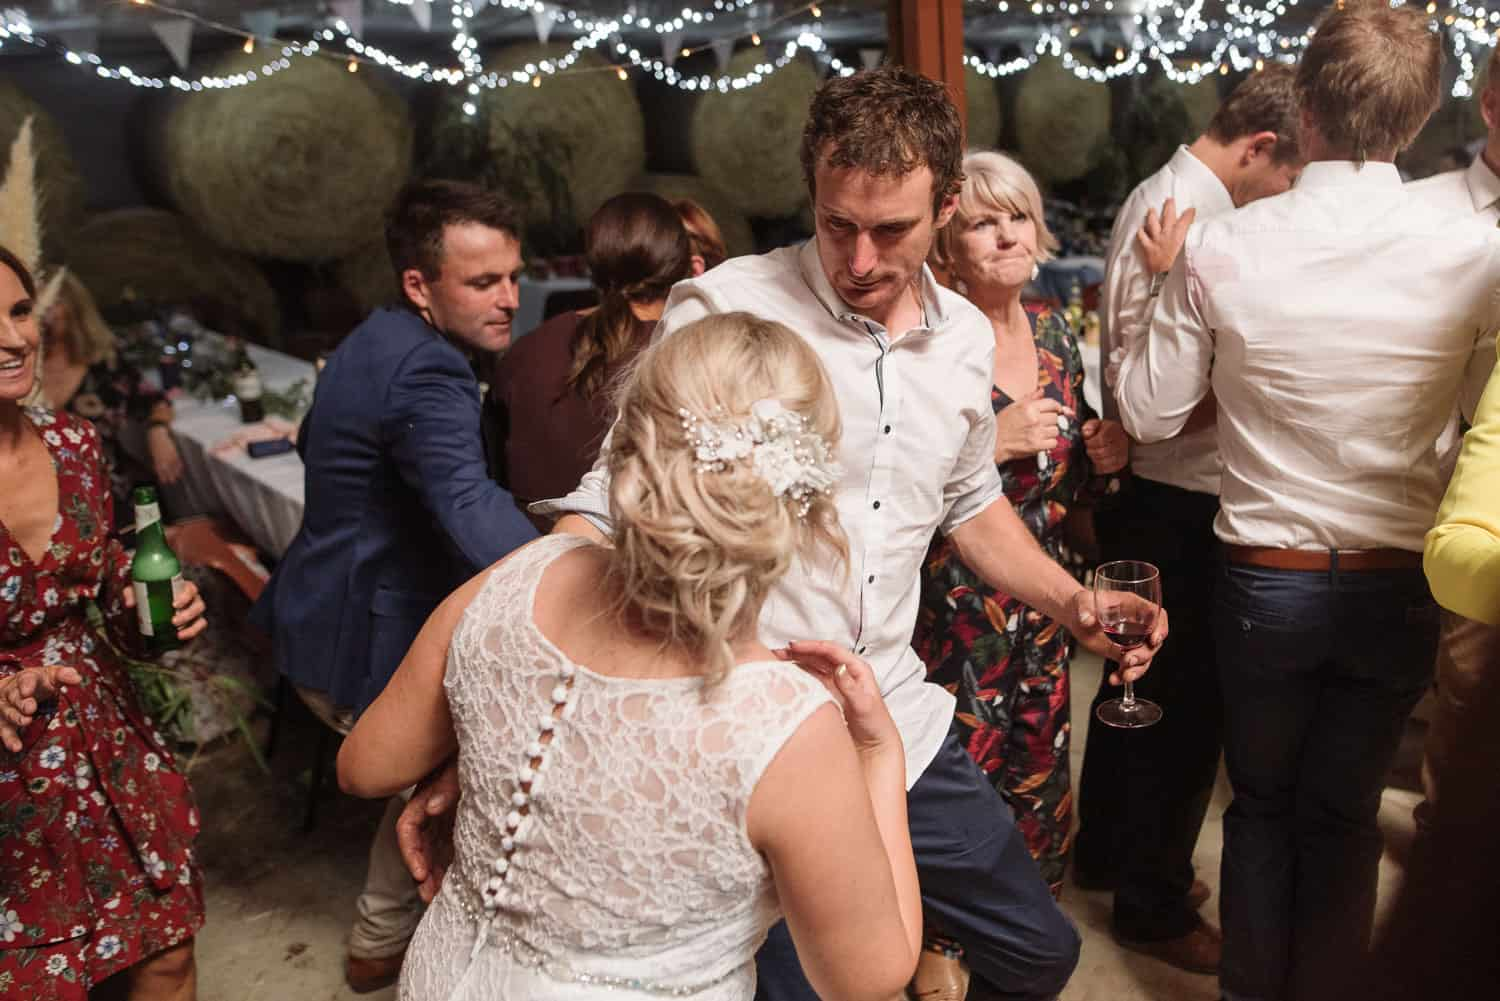 Groom dancing with his bride in a shed